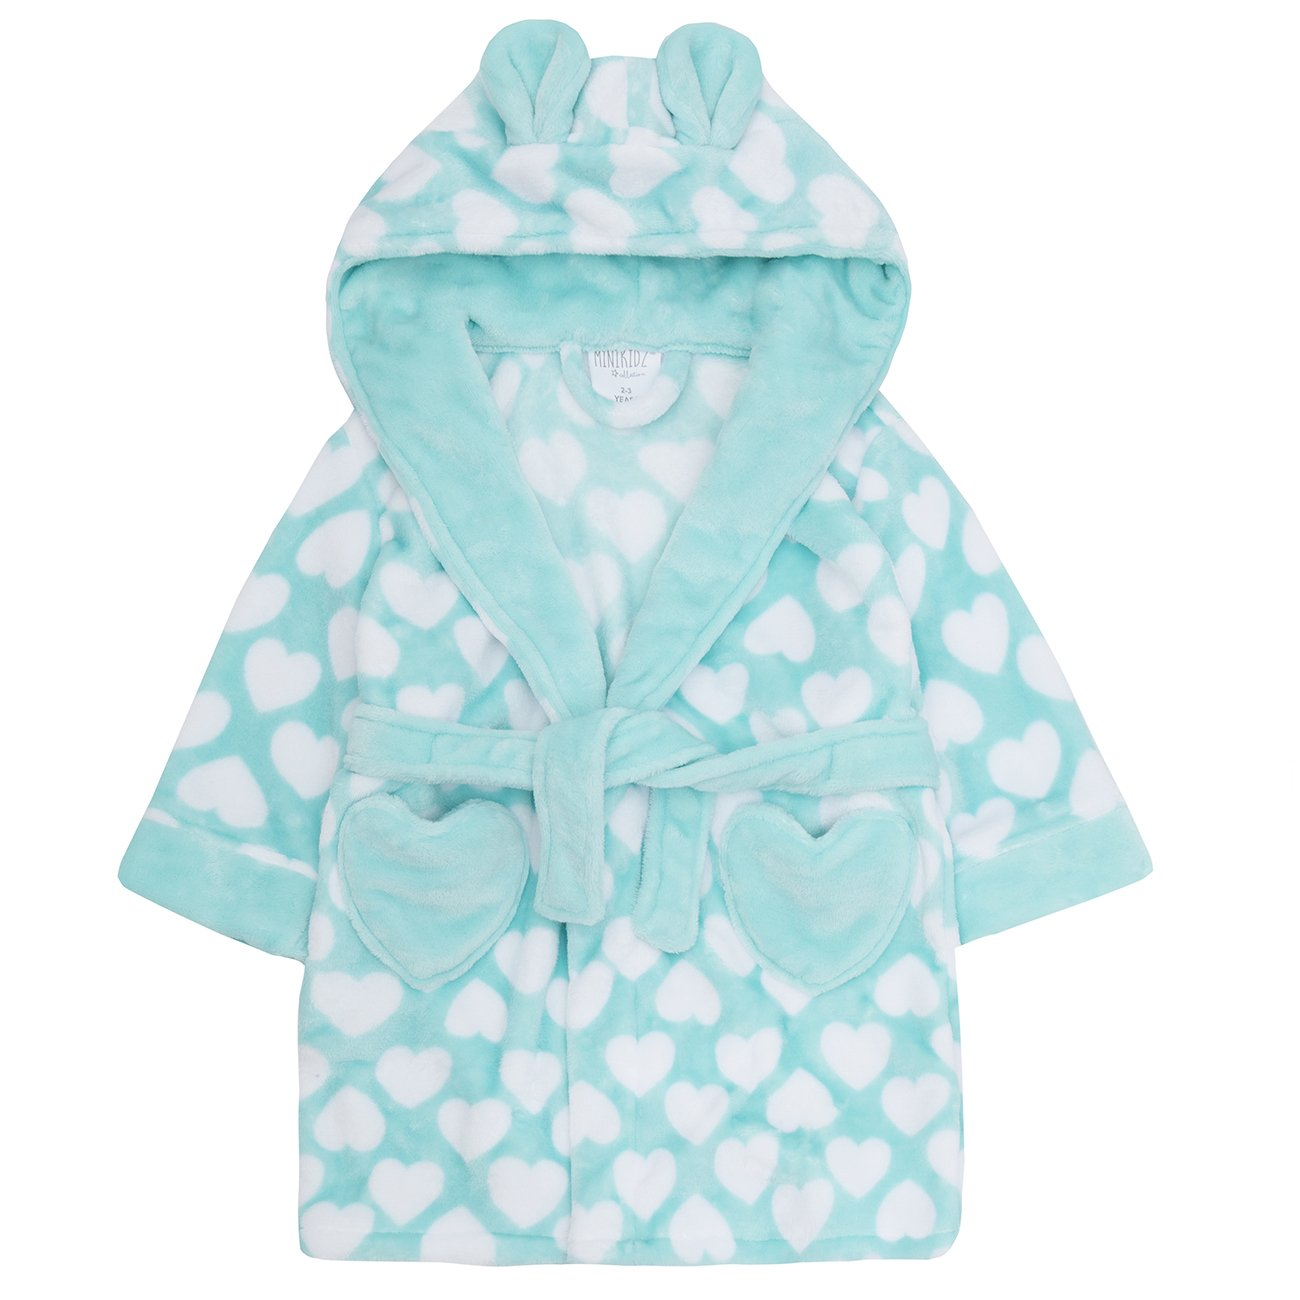 Girls Heart Print Luxury Hooded Fleece Dressing Gown with Ears sizes from 2 to 13 Years